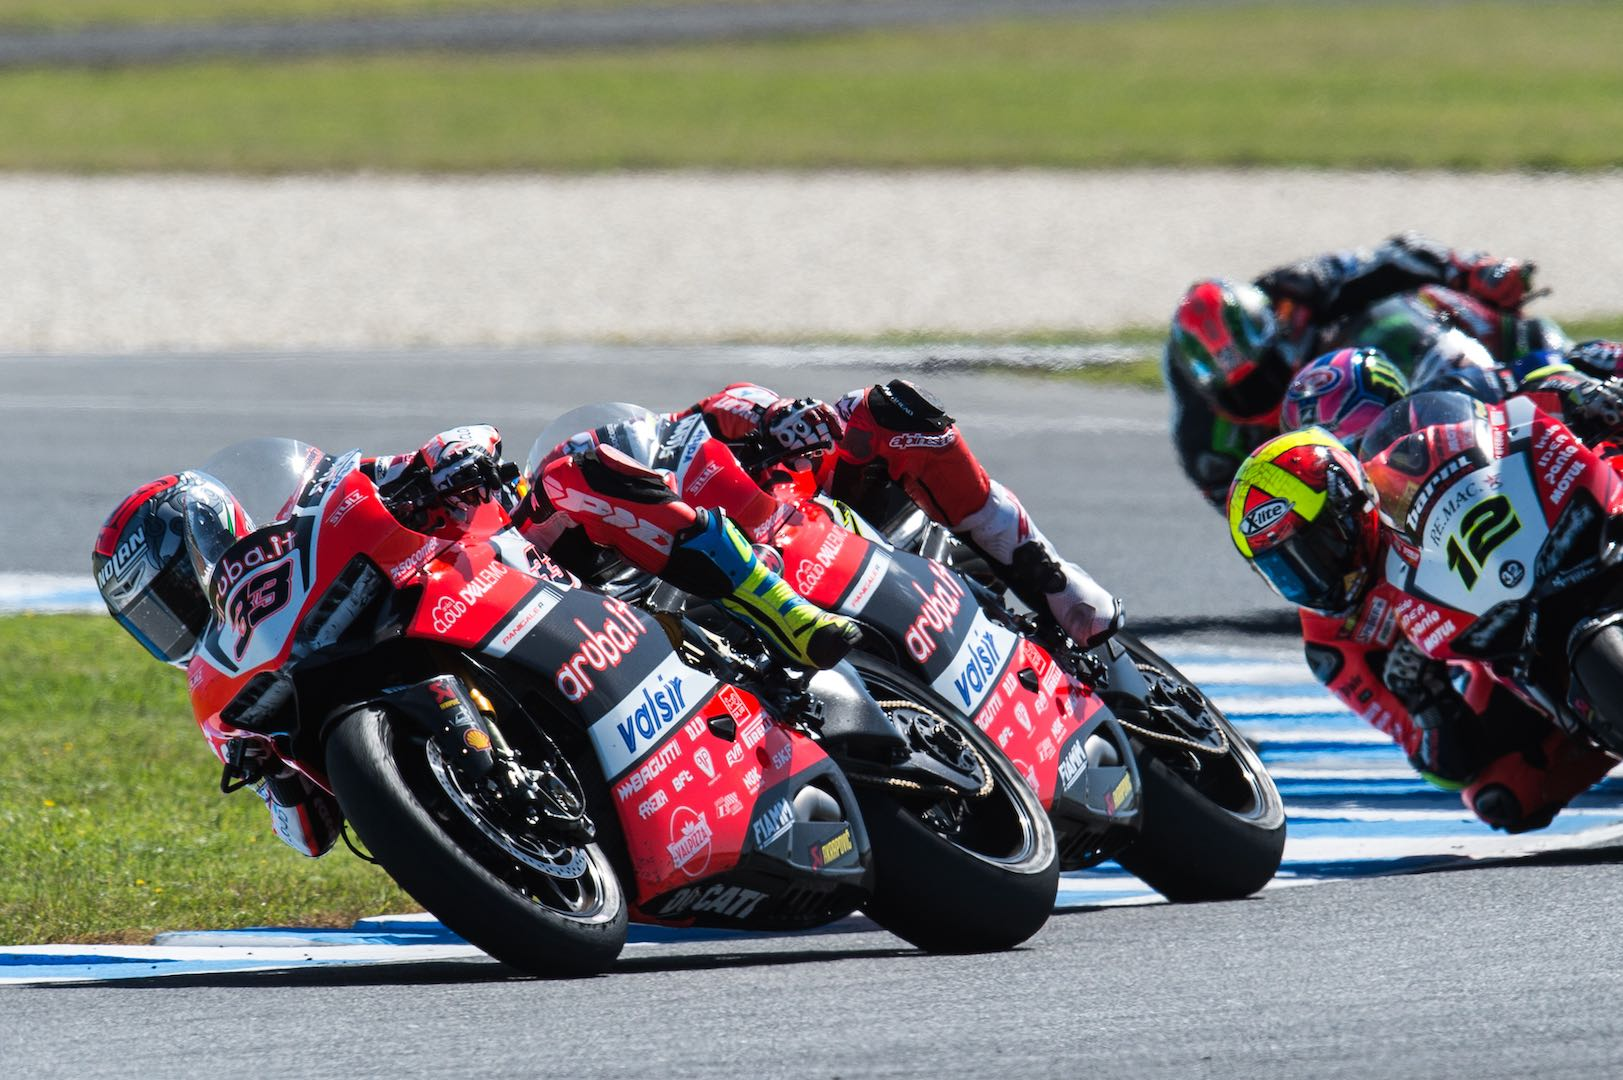 2017-phillip-island-world-superbike-race-2-results-3